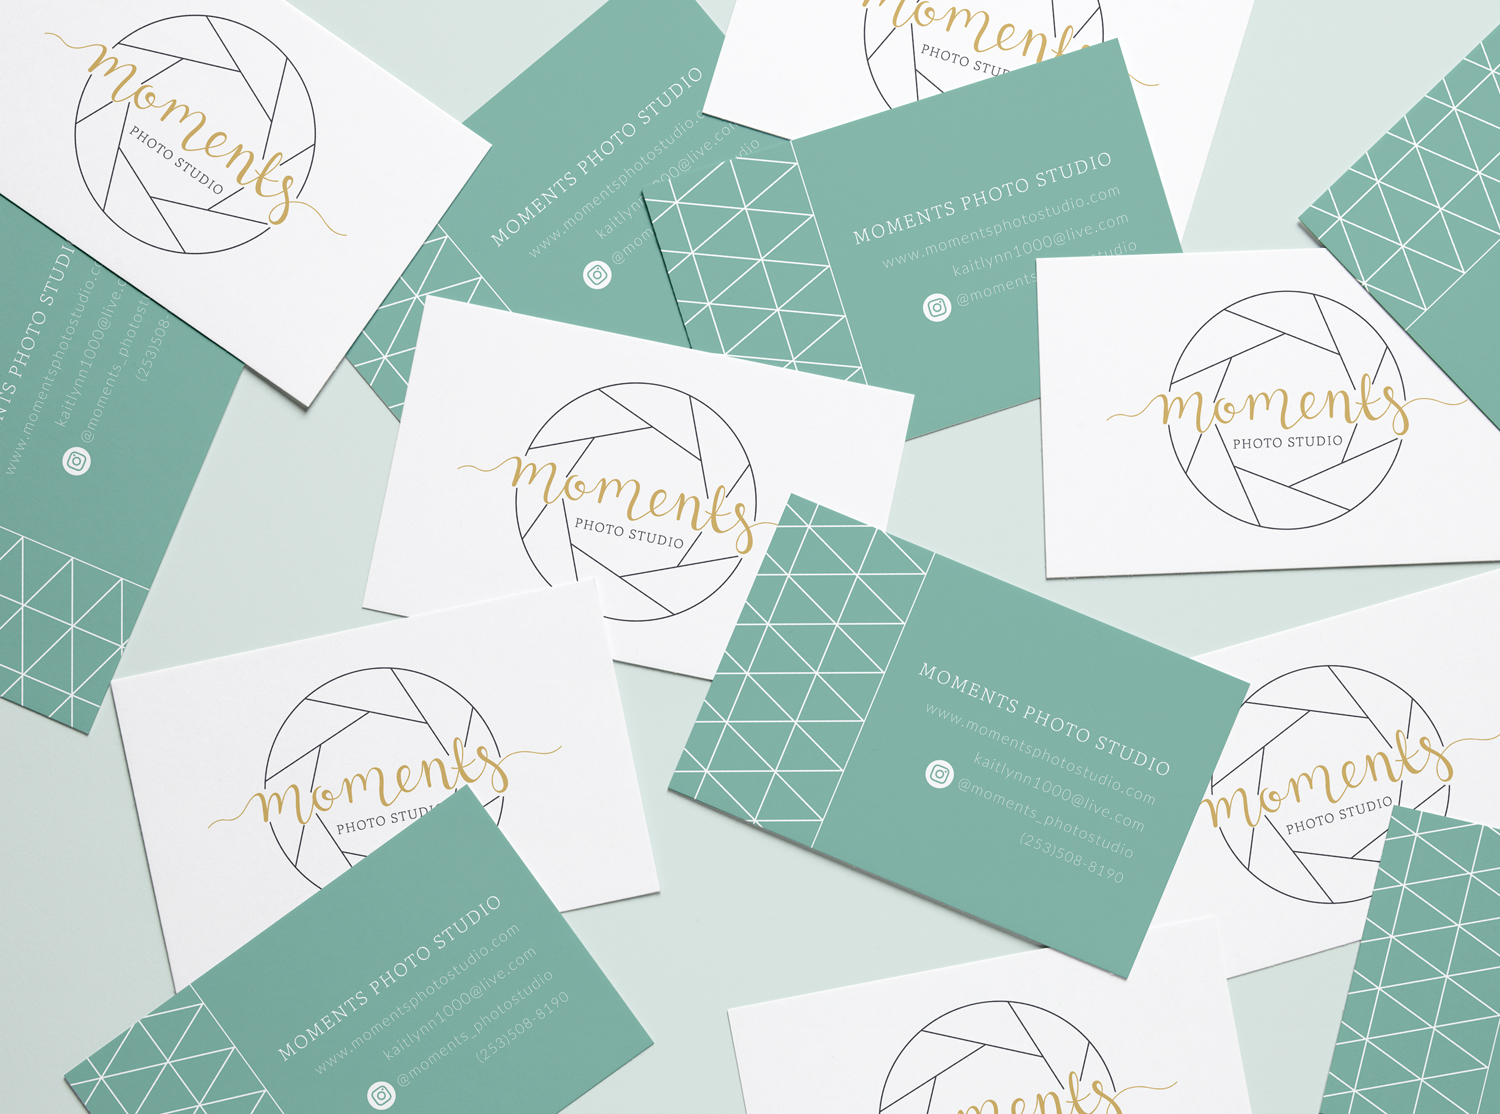 Moments Photo Studio Business Cards Logo & Branding by Bea & Bloom Creative Design Studio